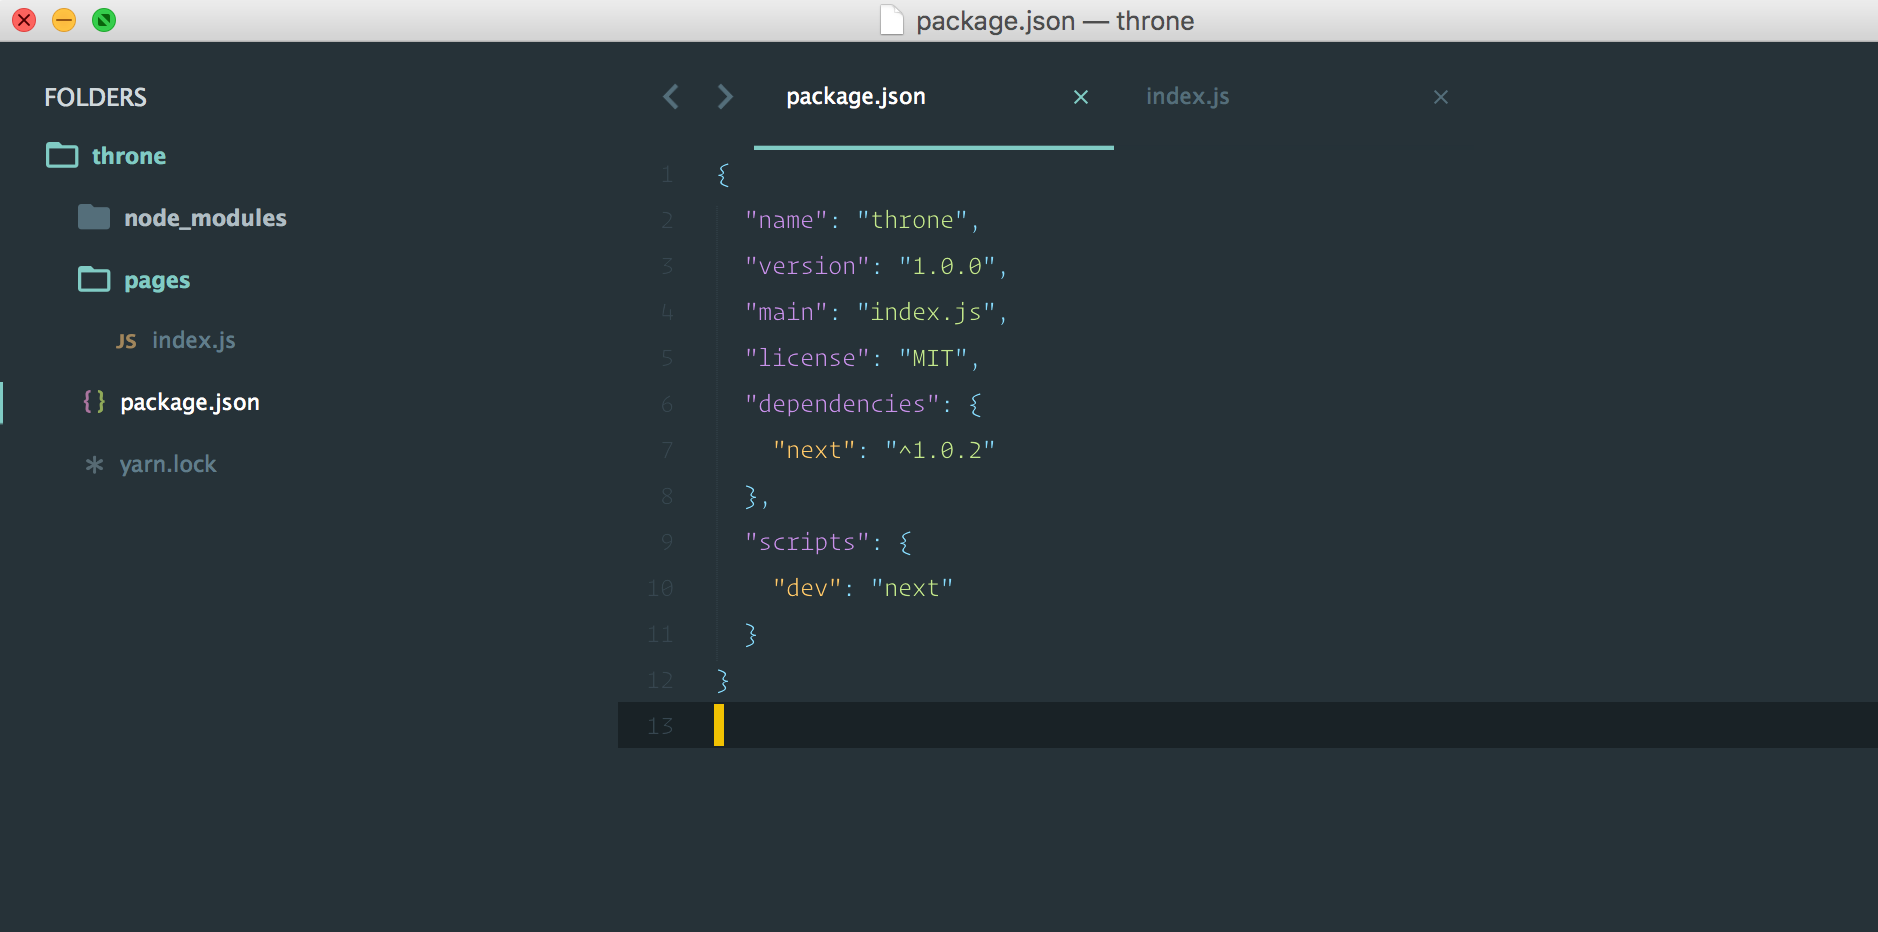 Add Script to package.json